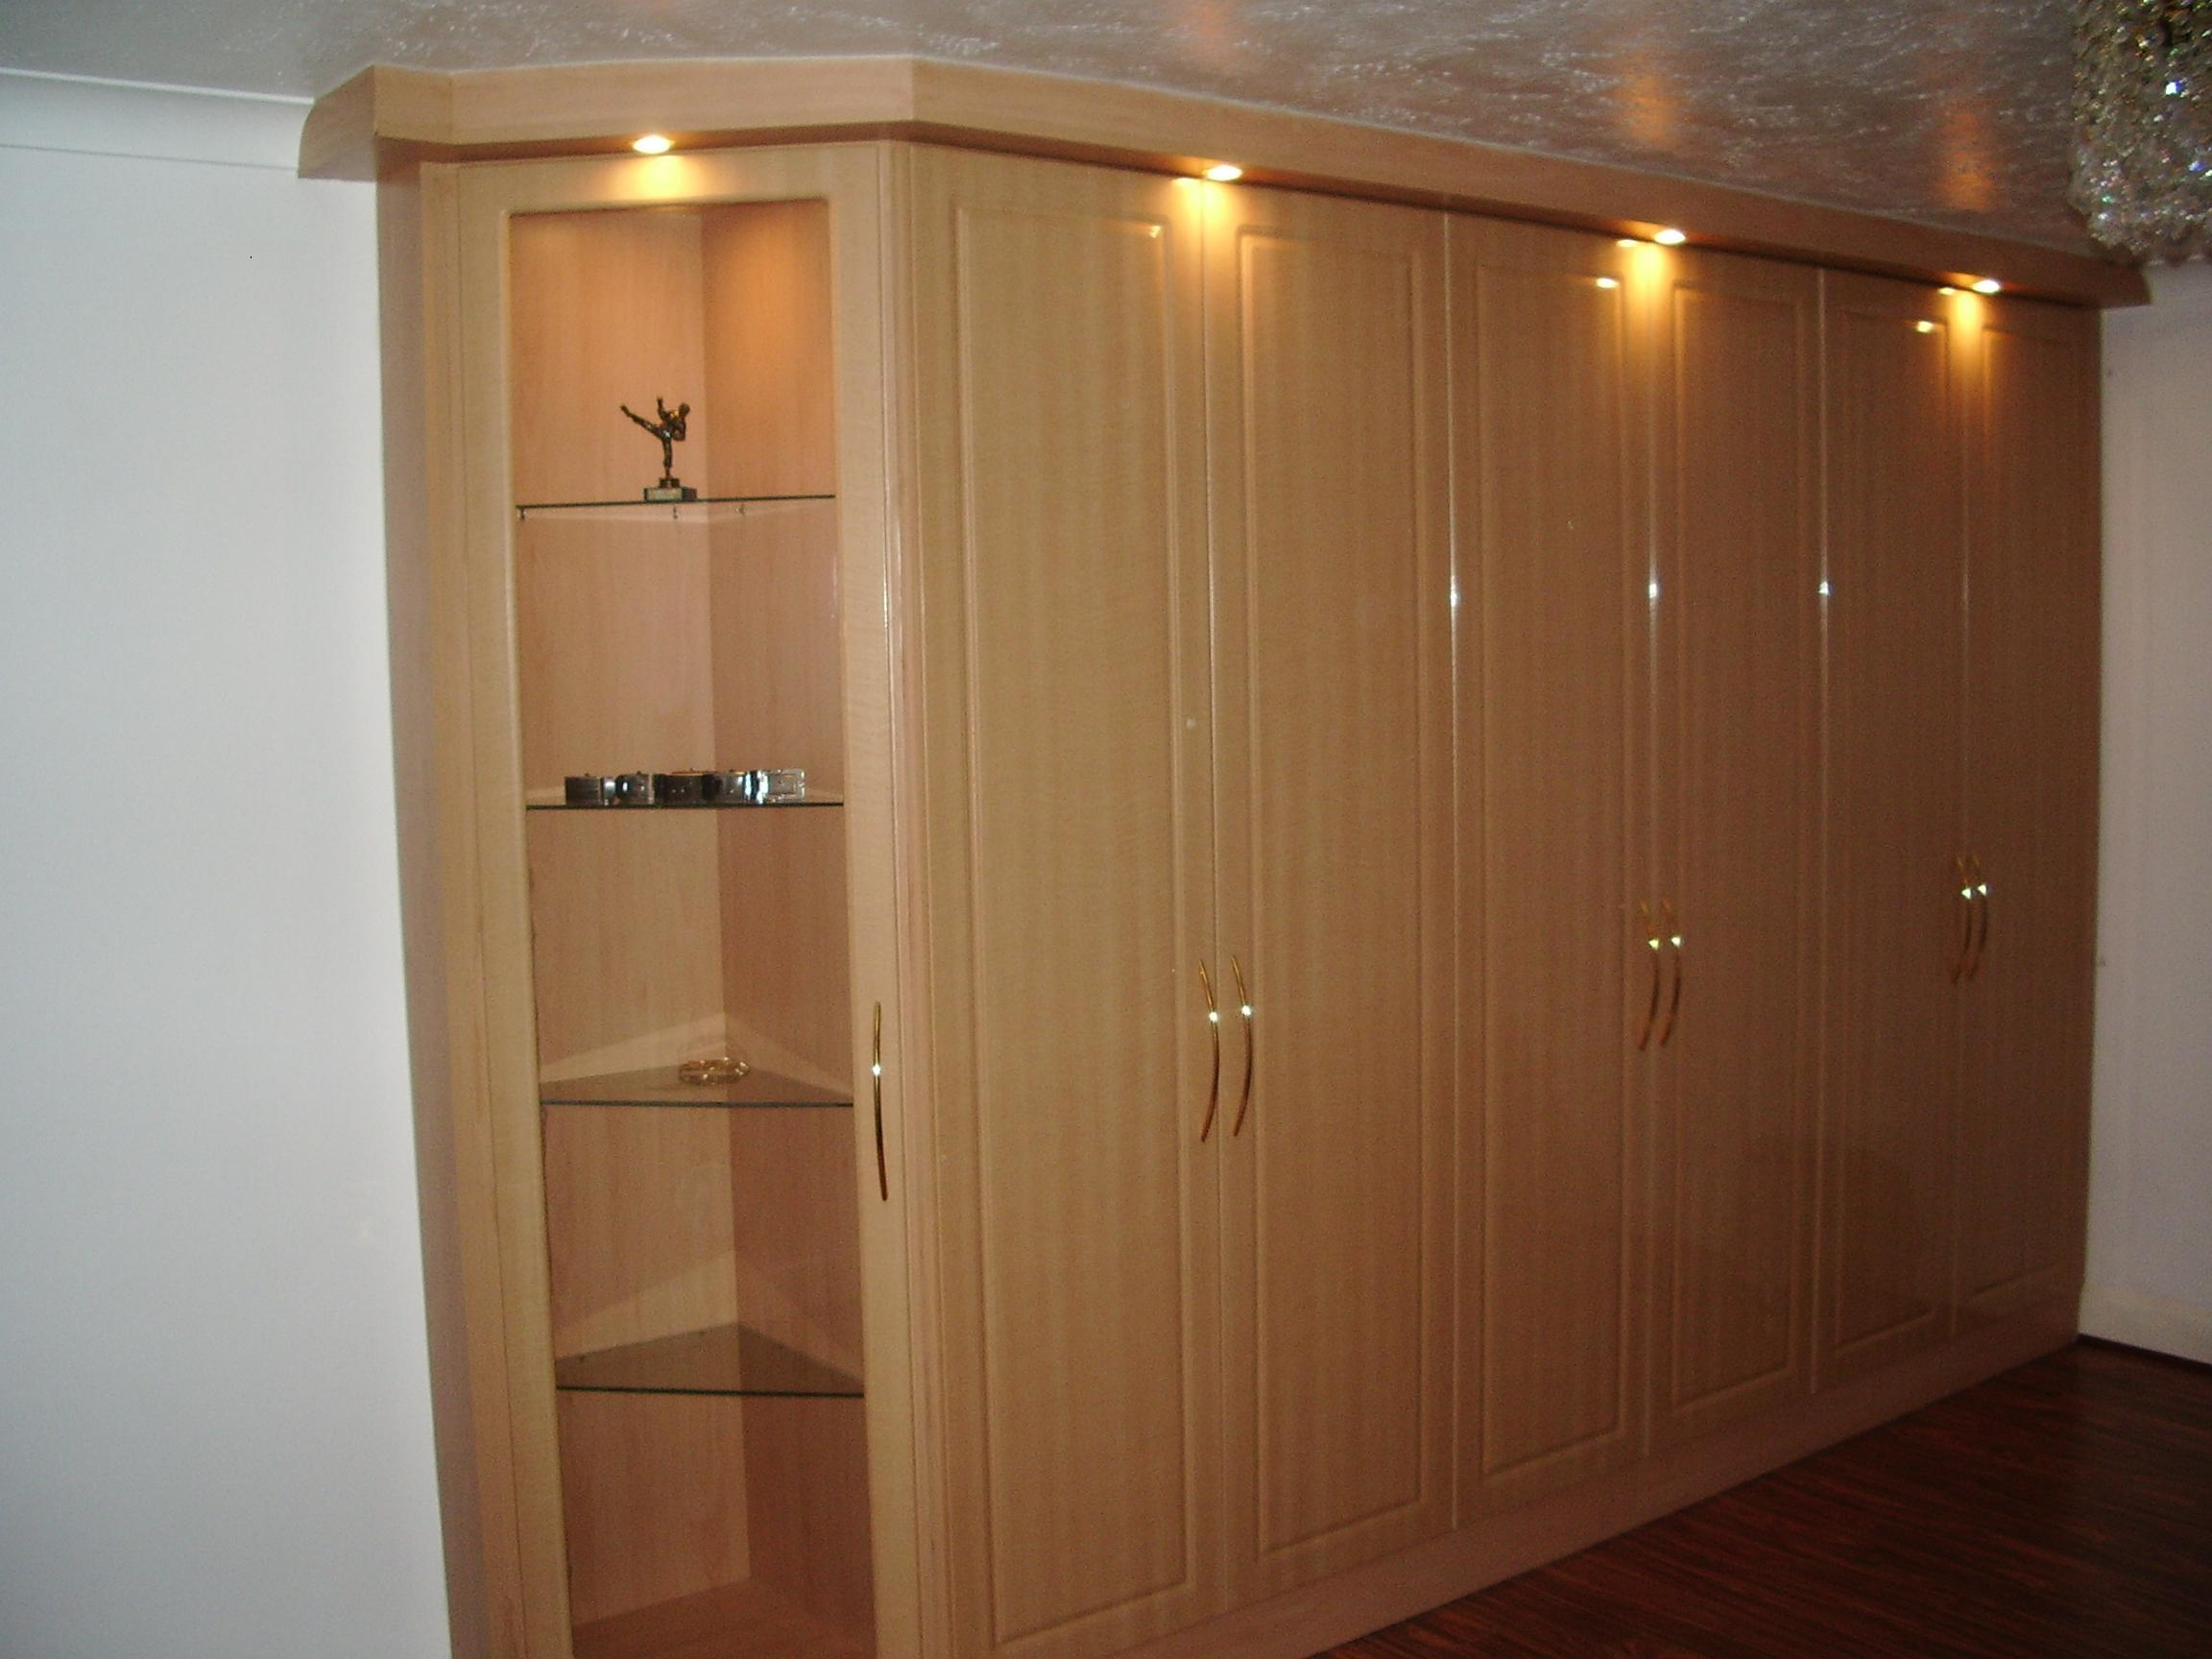 A beautiful example of made to measure wardrobes in a golden maple gloss